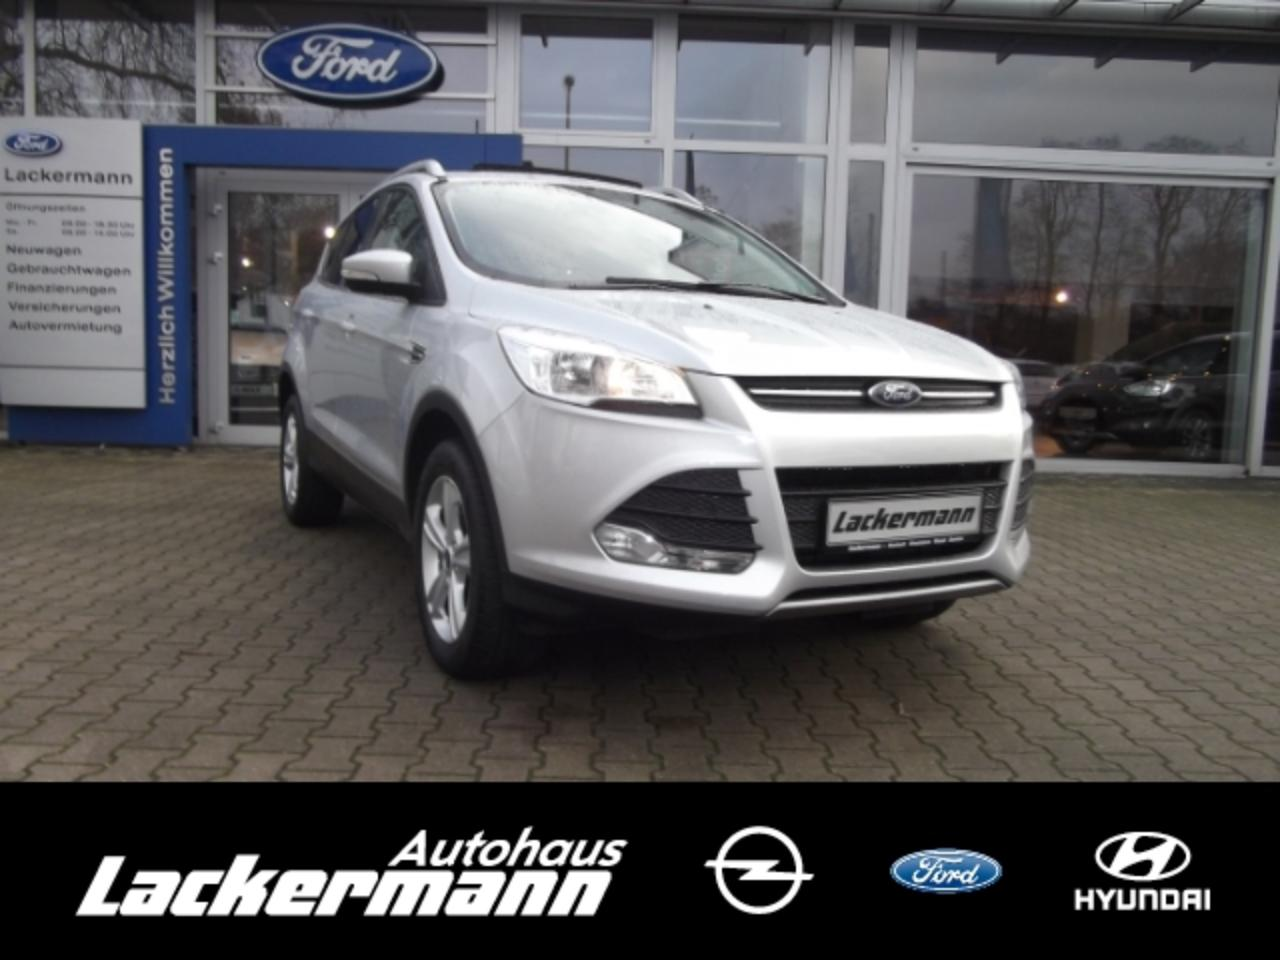 Ford Kuga 1.5 EcoBoost Trend Keyless El. Panodach Panorama M